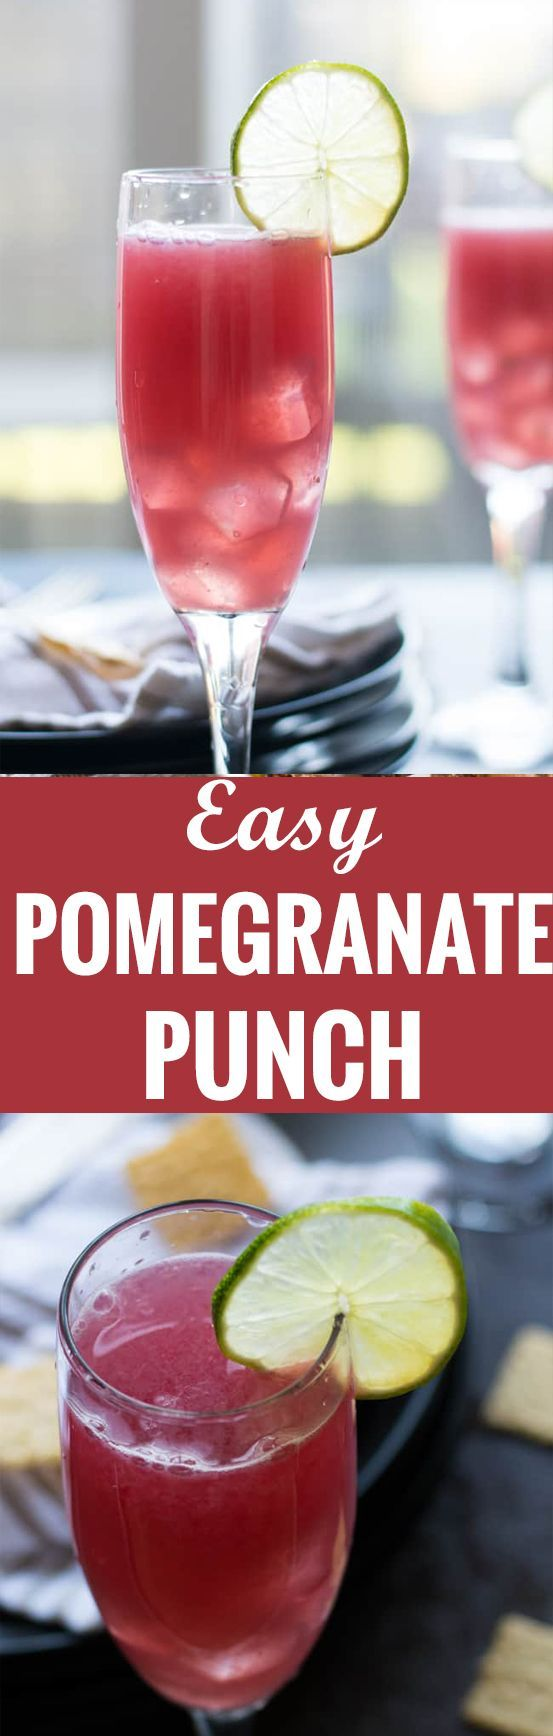 Pomegranate punch recipe non alcoholic is healthy drink nicely created to be served in parties otherwise to treat ourselves with some tasty goodies. This is perfect to be served for the entire family without any guilt.